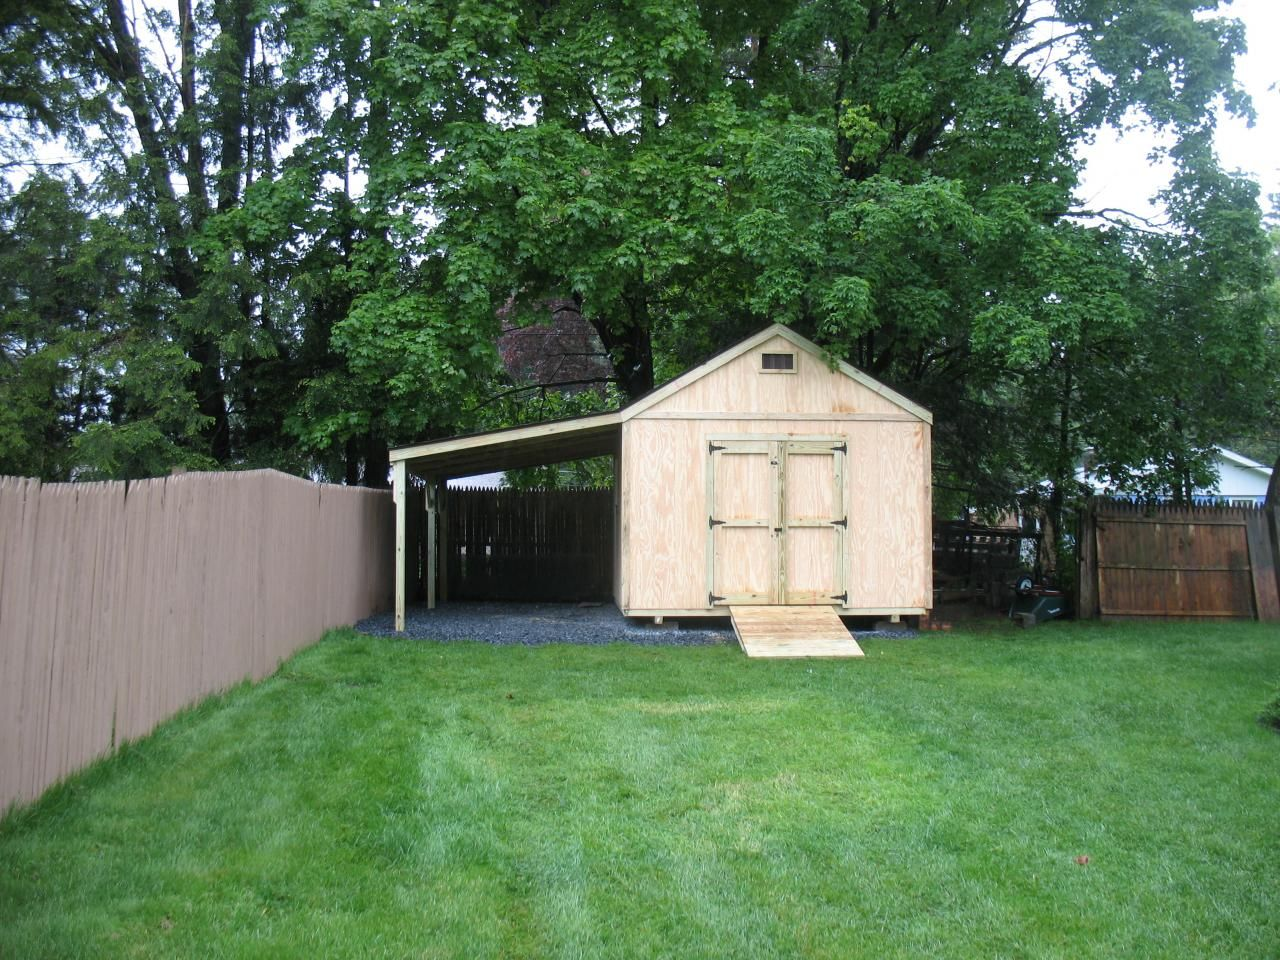 Shed 12x16 Wood 12x16 Shed With A 9x16 Overhang Diy Shed Plans Diy Shed Storage Building Plans